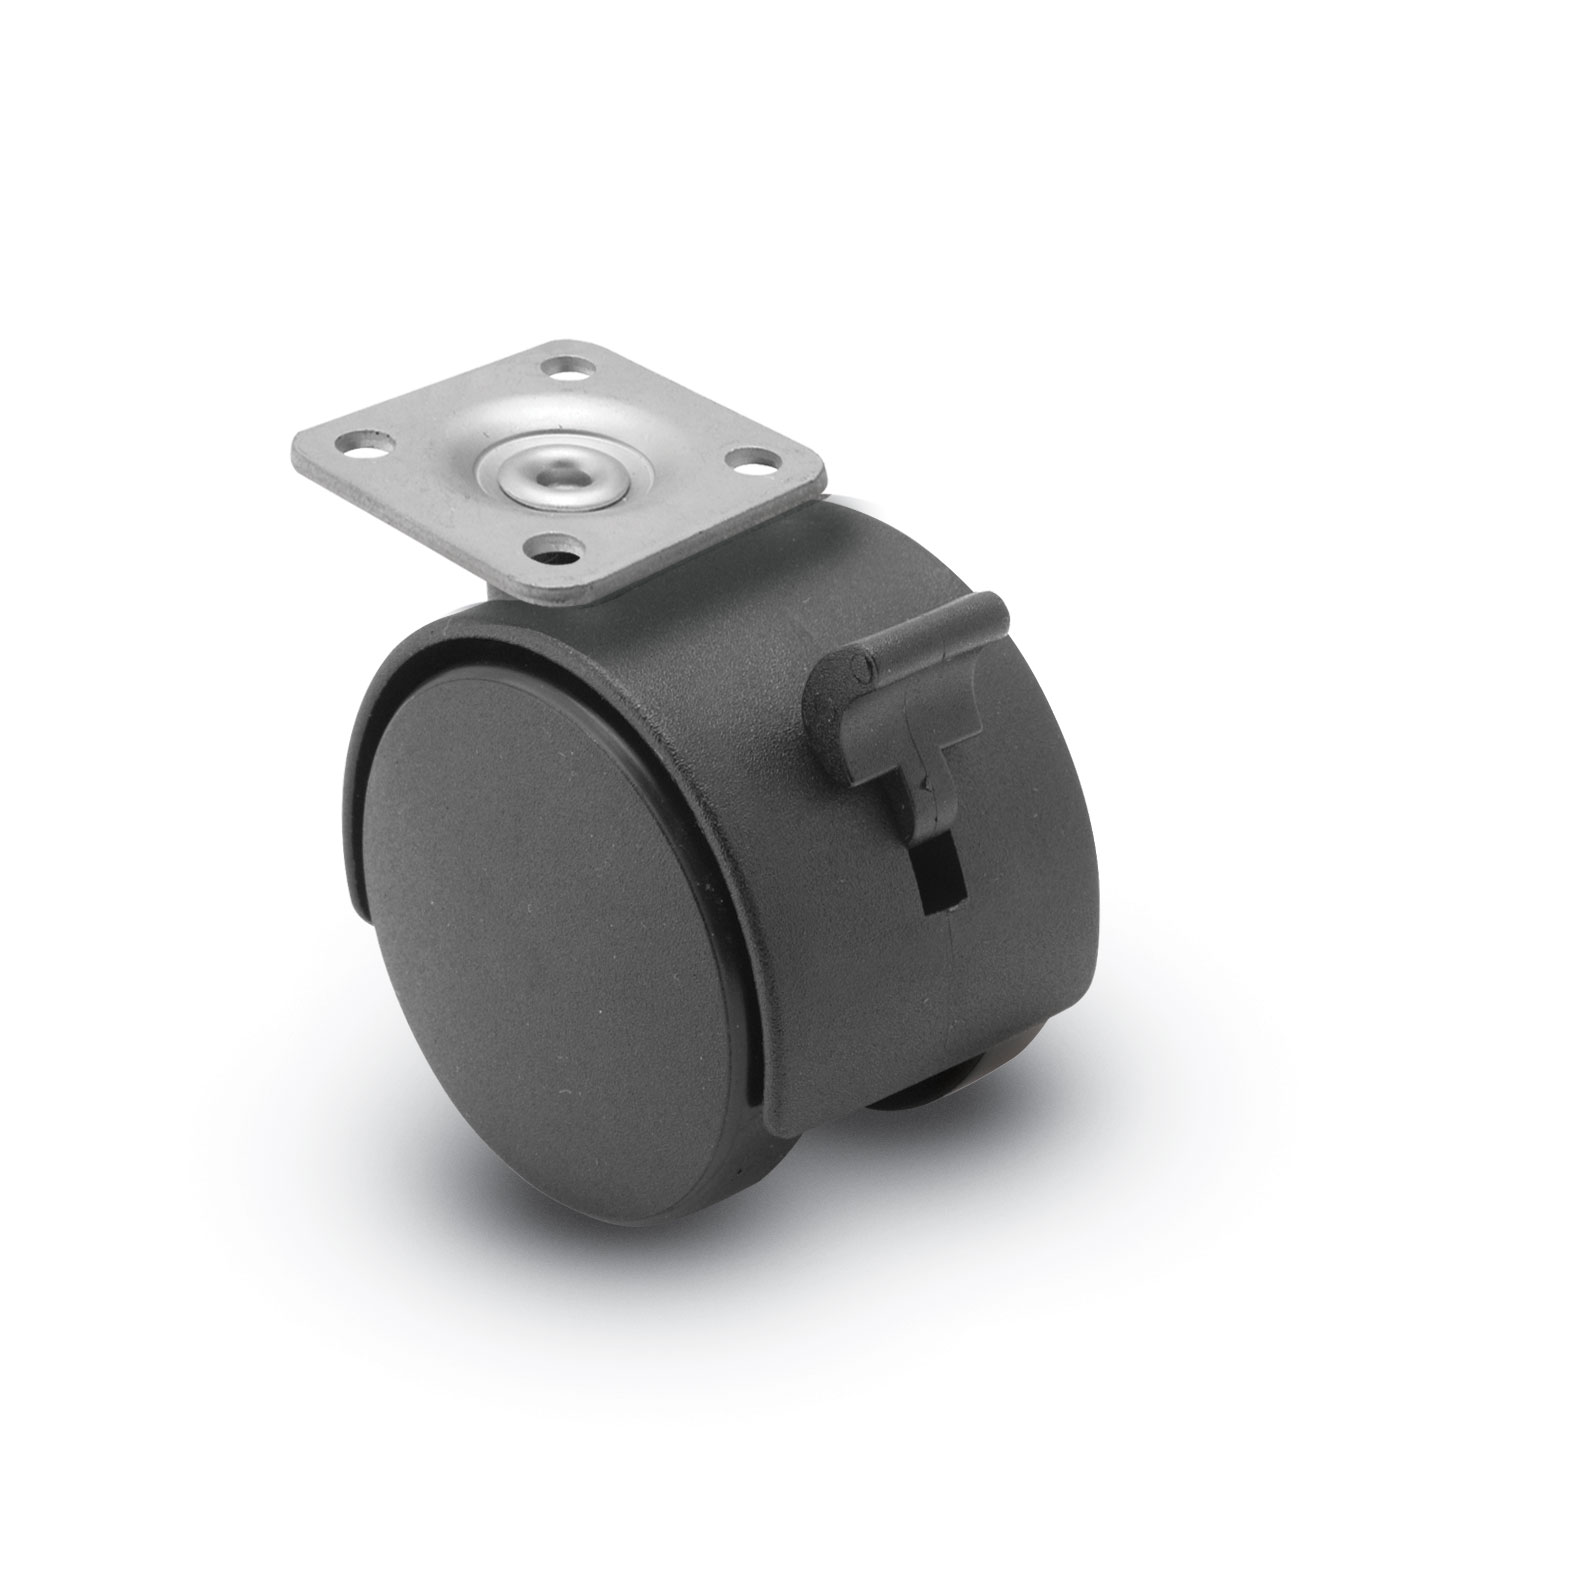 Shepherd Source II Series Casters